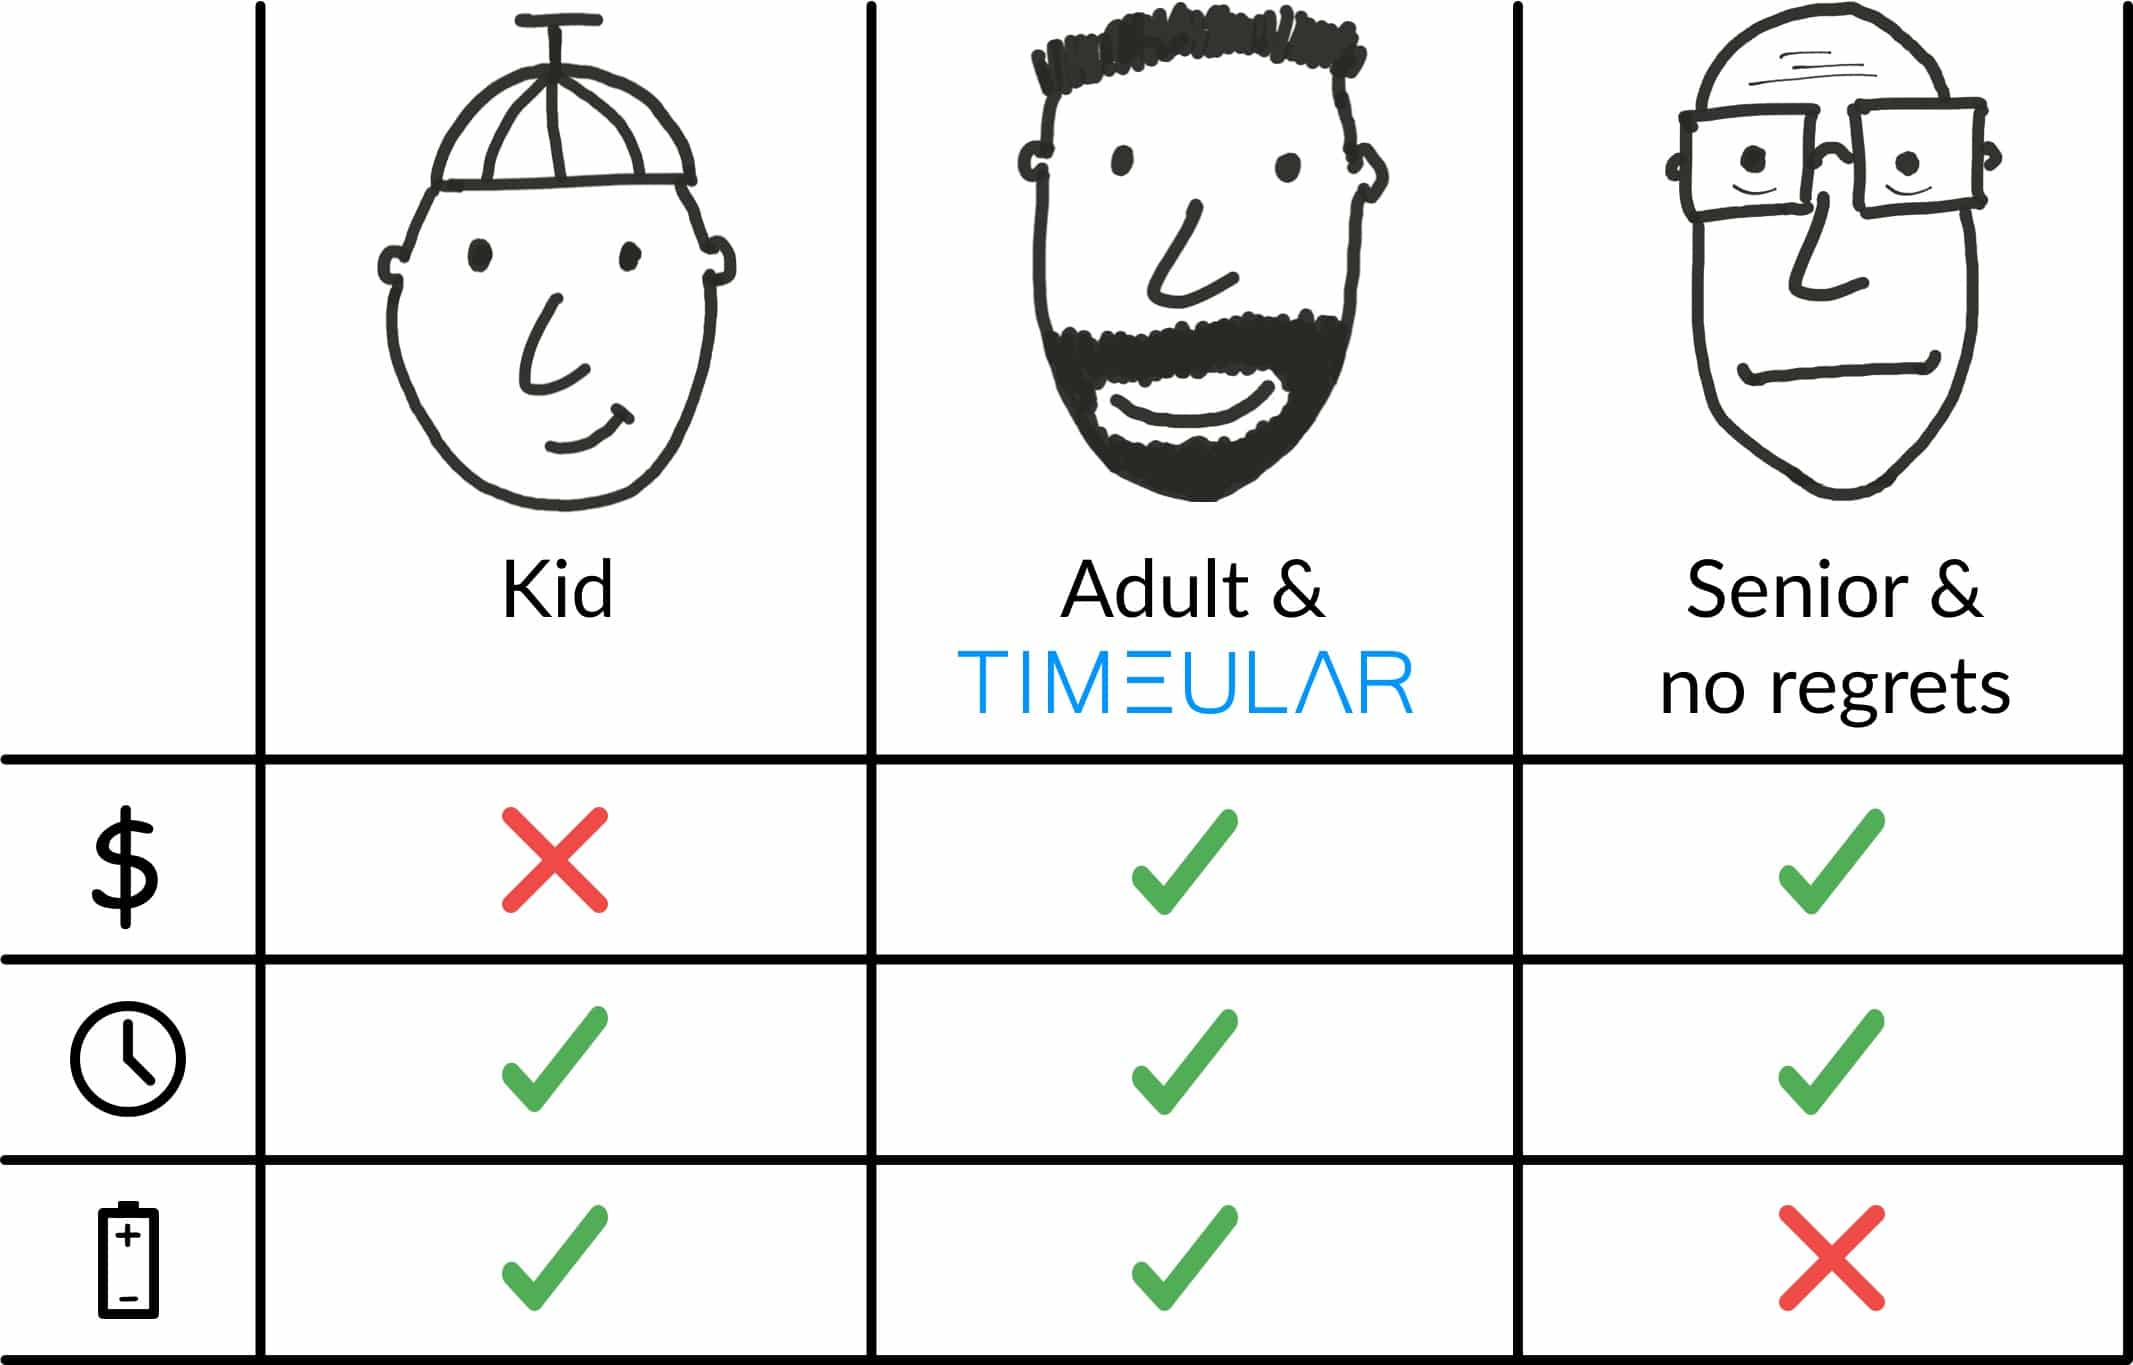 kid-adult-senior-with-time-with-timeular